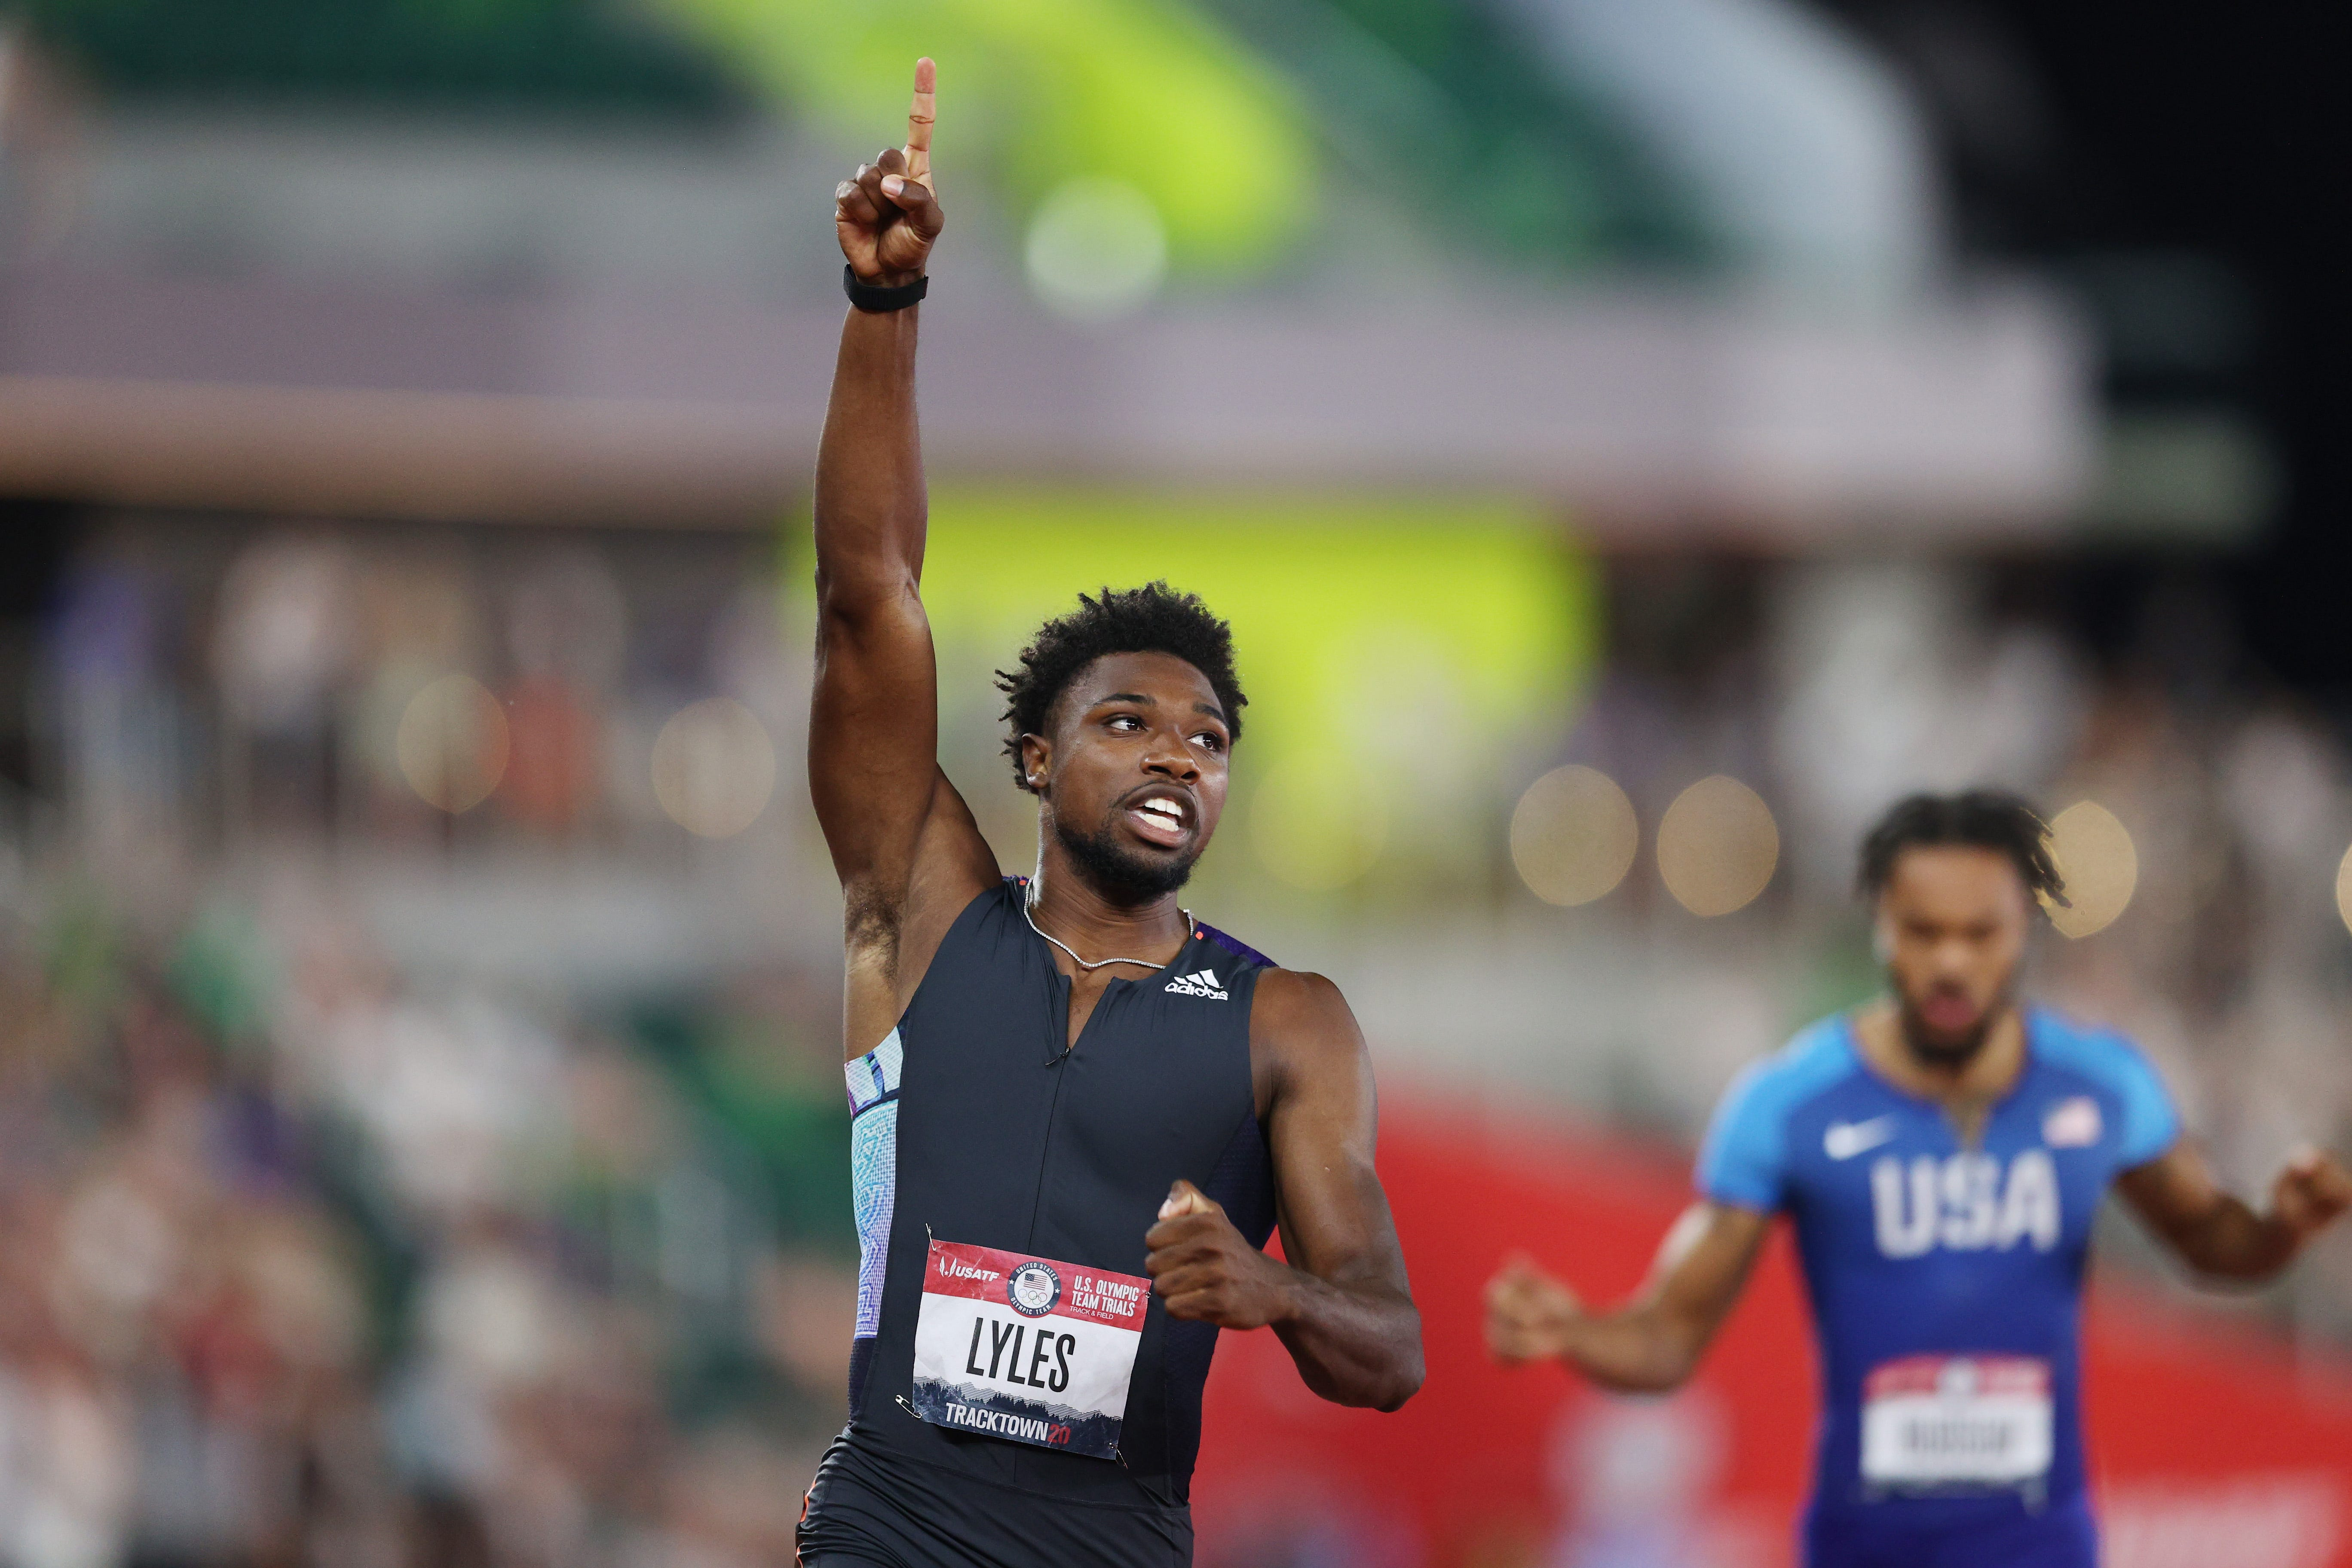 Noah Lyles wins 200-meter dash at U.S. Olympic track and field trials in world-leading time